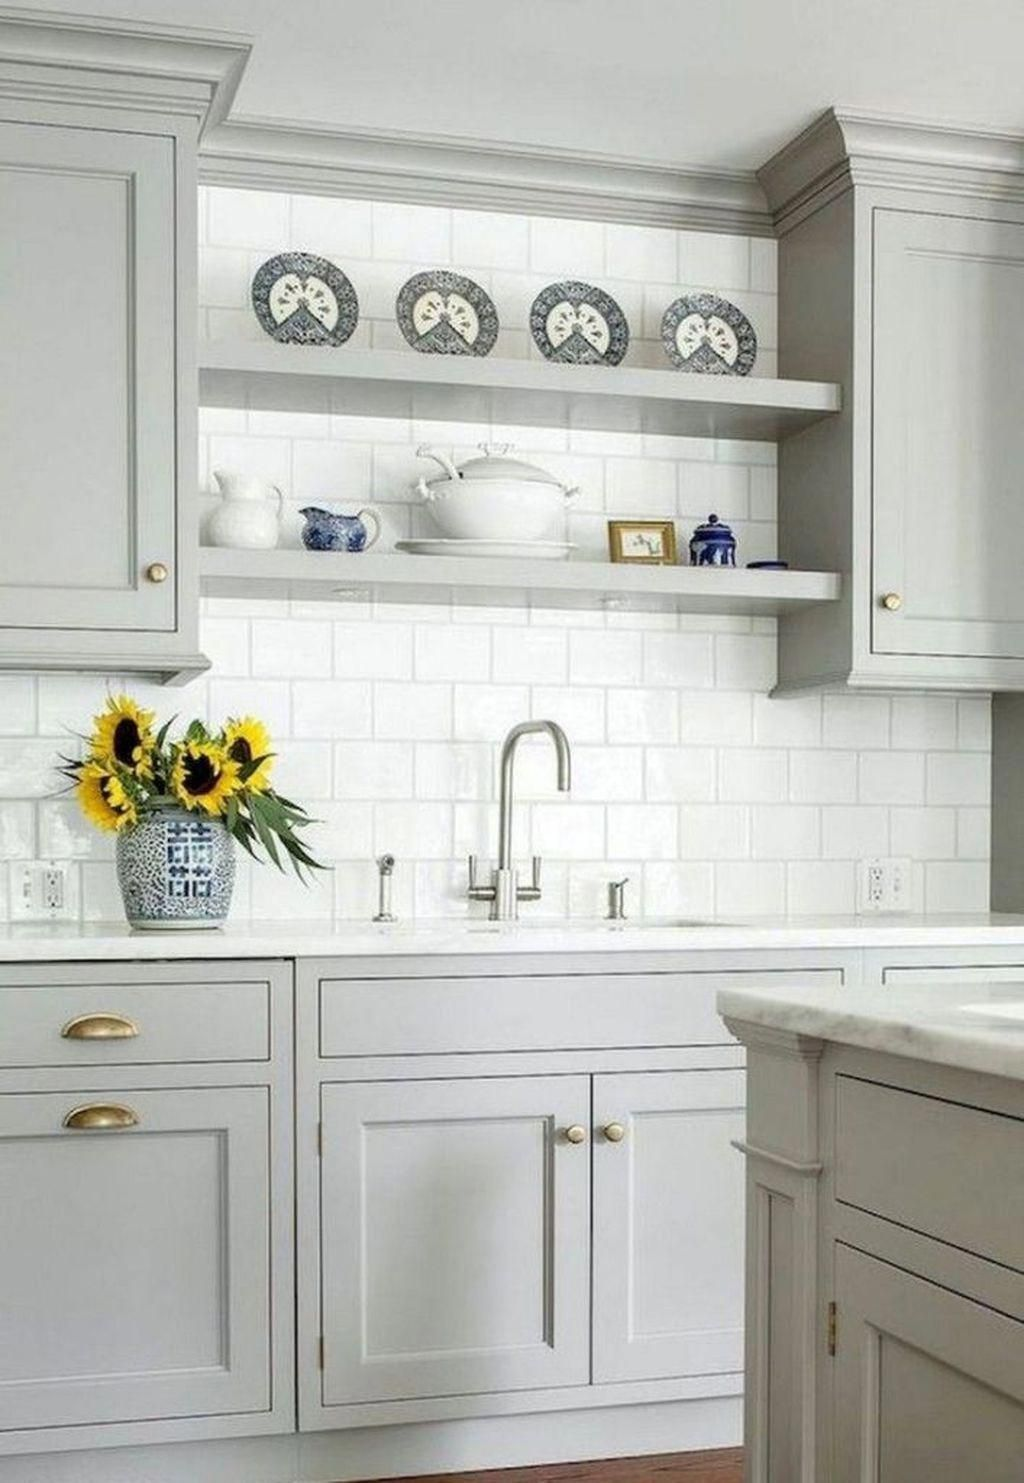 Cool Antique Kitchen Cabinets With Images Kitchen Cabinets Makeover Kitchen Renovation New Kitchen Cabinets